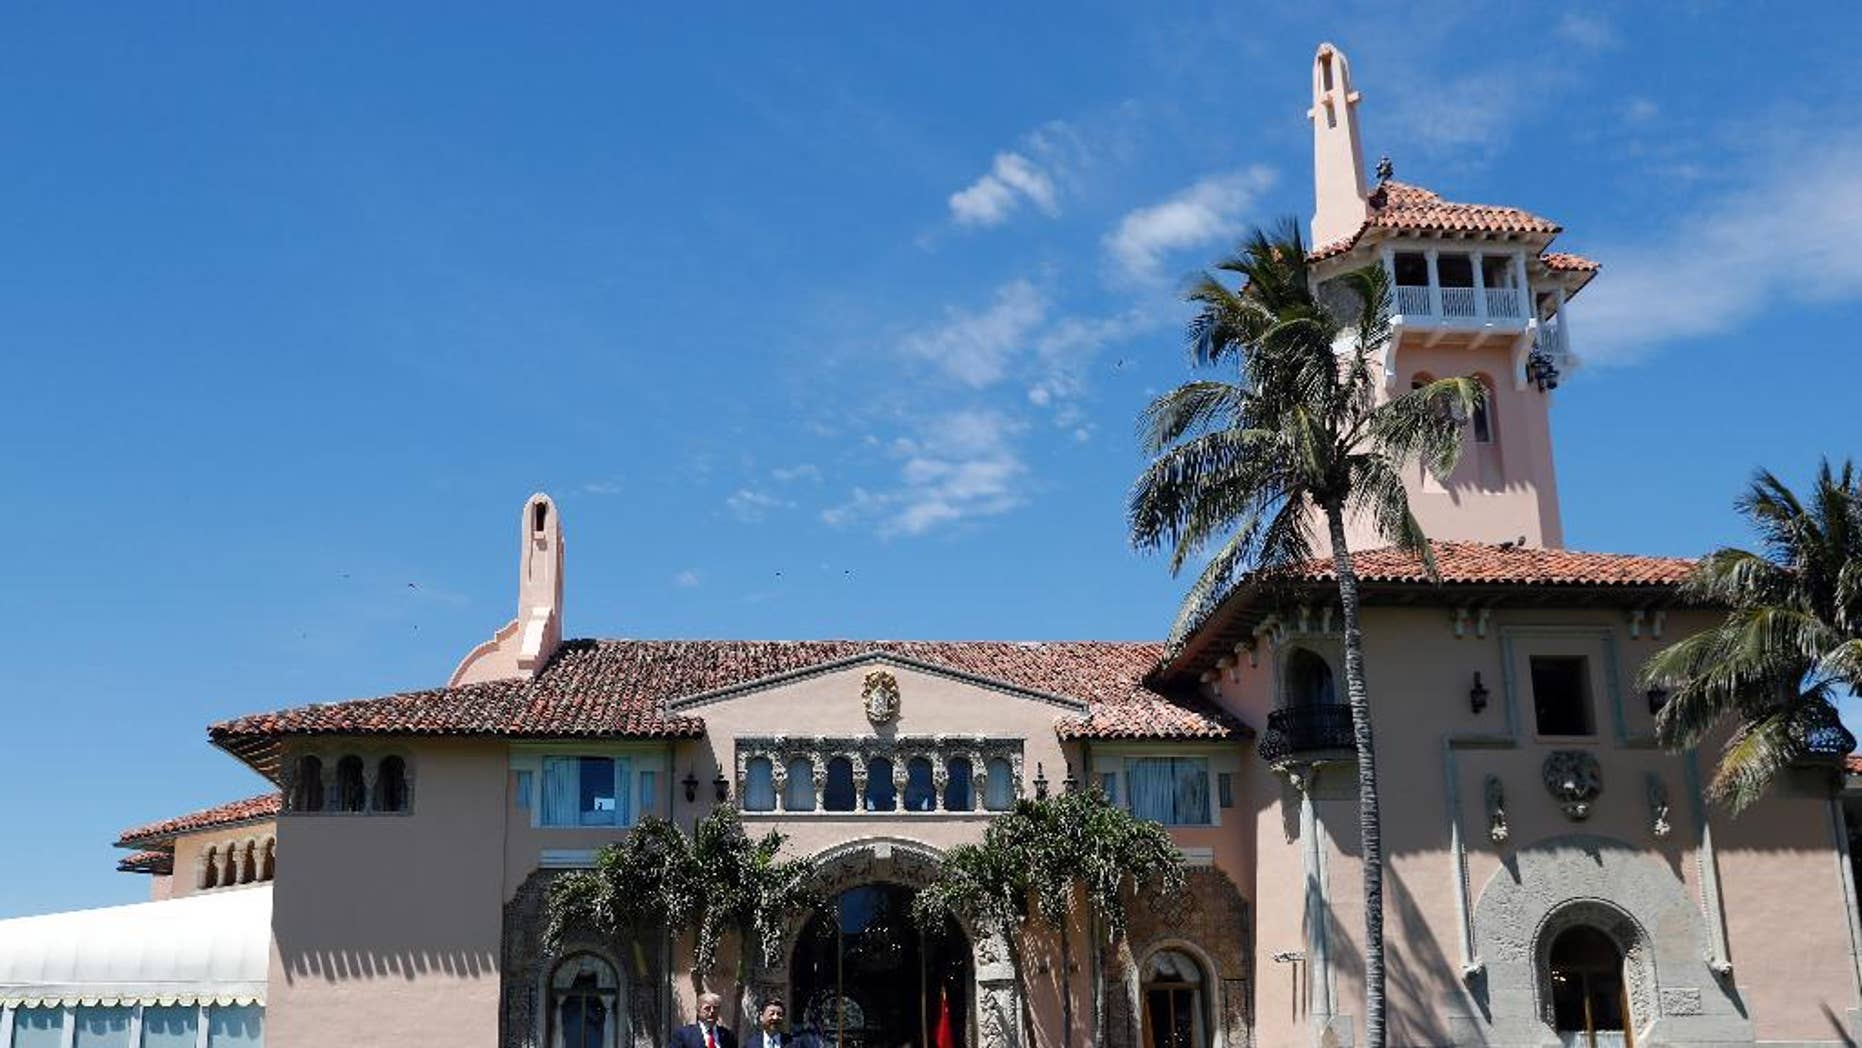 President Donald Trump, left, and Chinese President Xi Jinping pause in their walk after their meetings at Mar-a-Lago, Friday, April 7, 2017, in Palm Beach, Fla. (AP Photo/Alex Brandon)